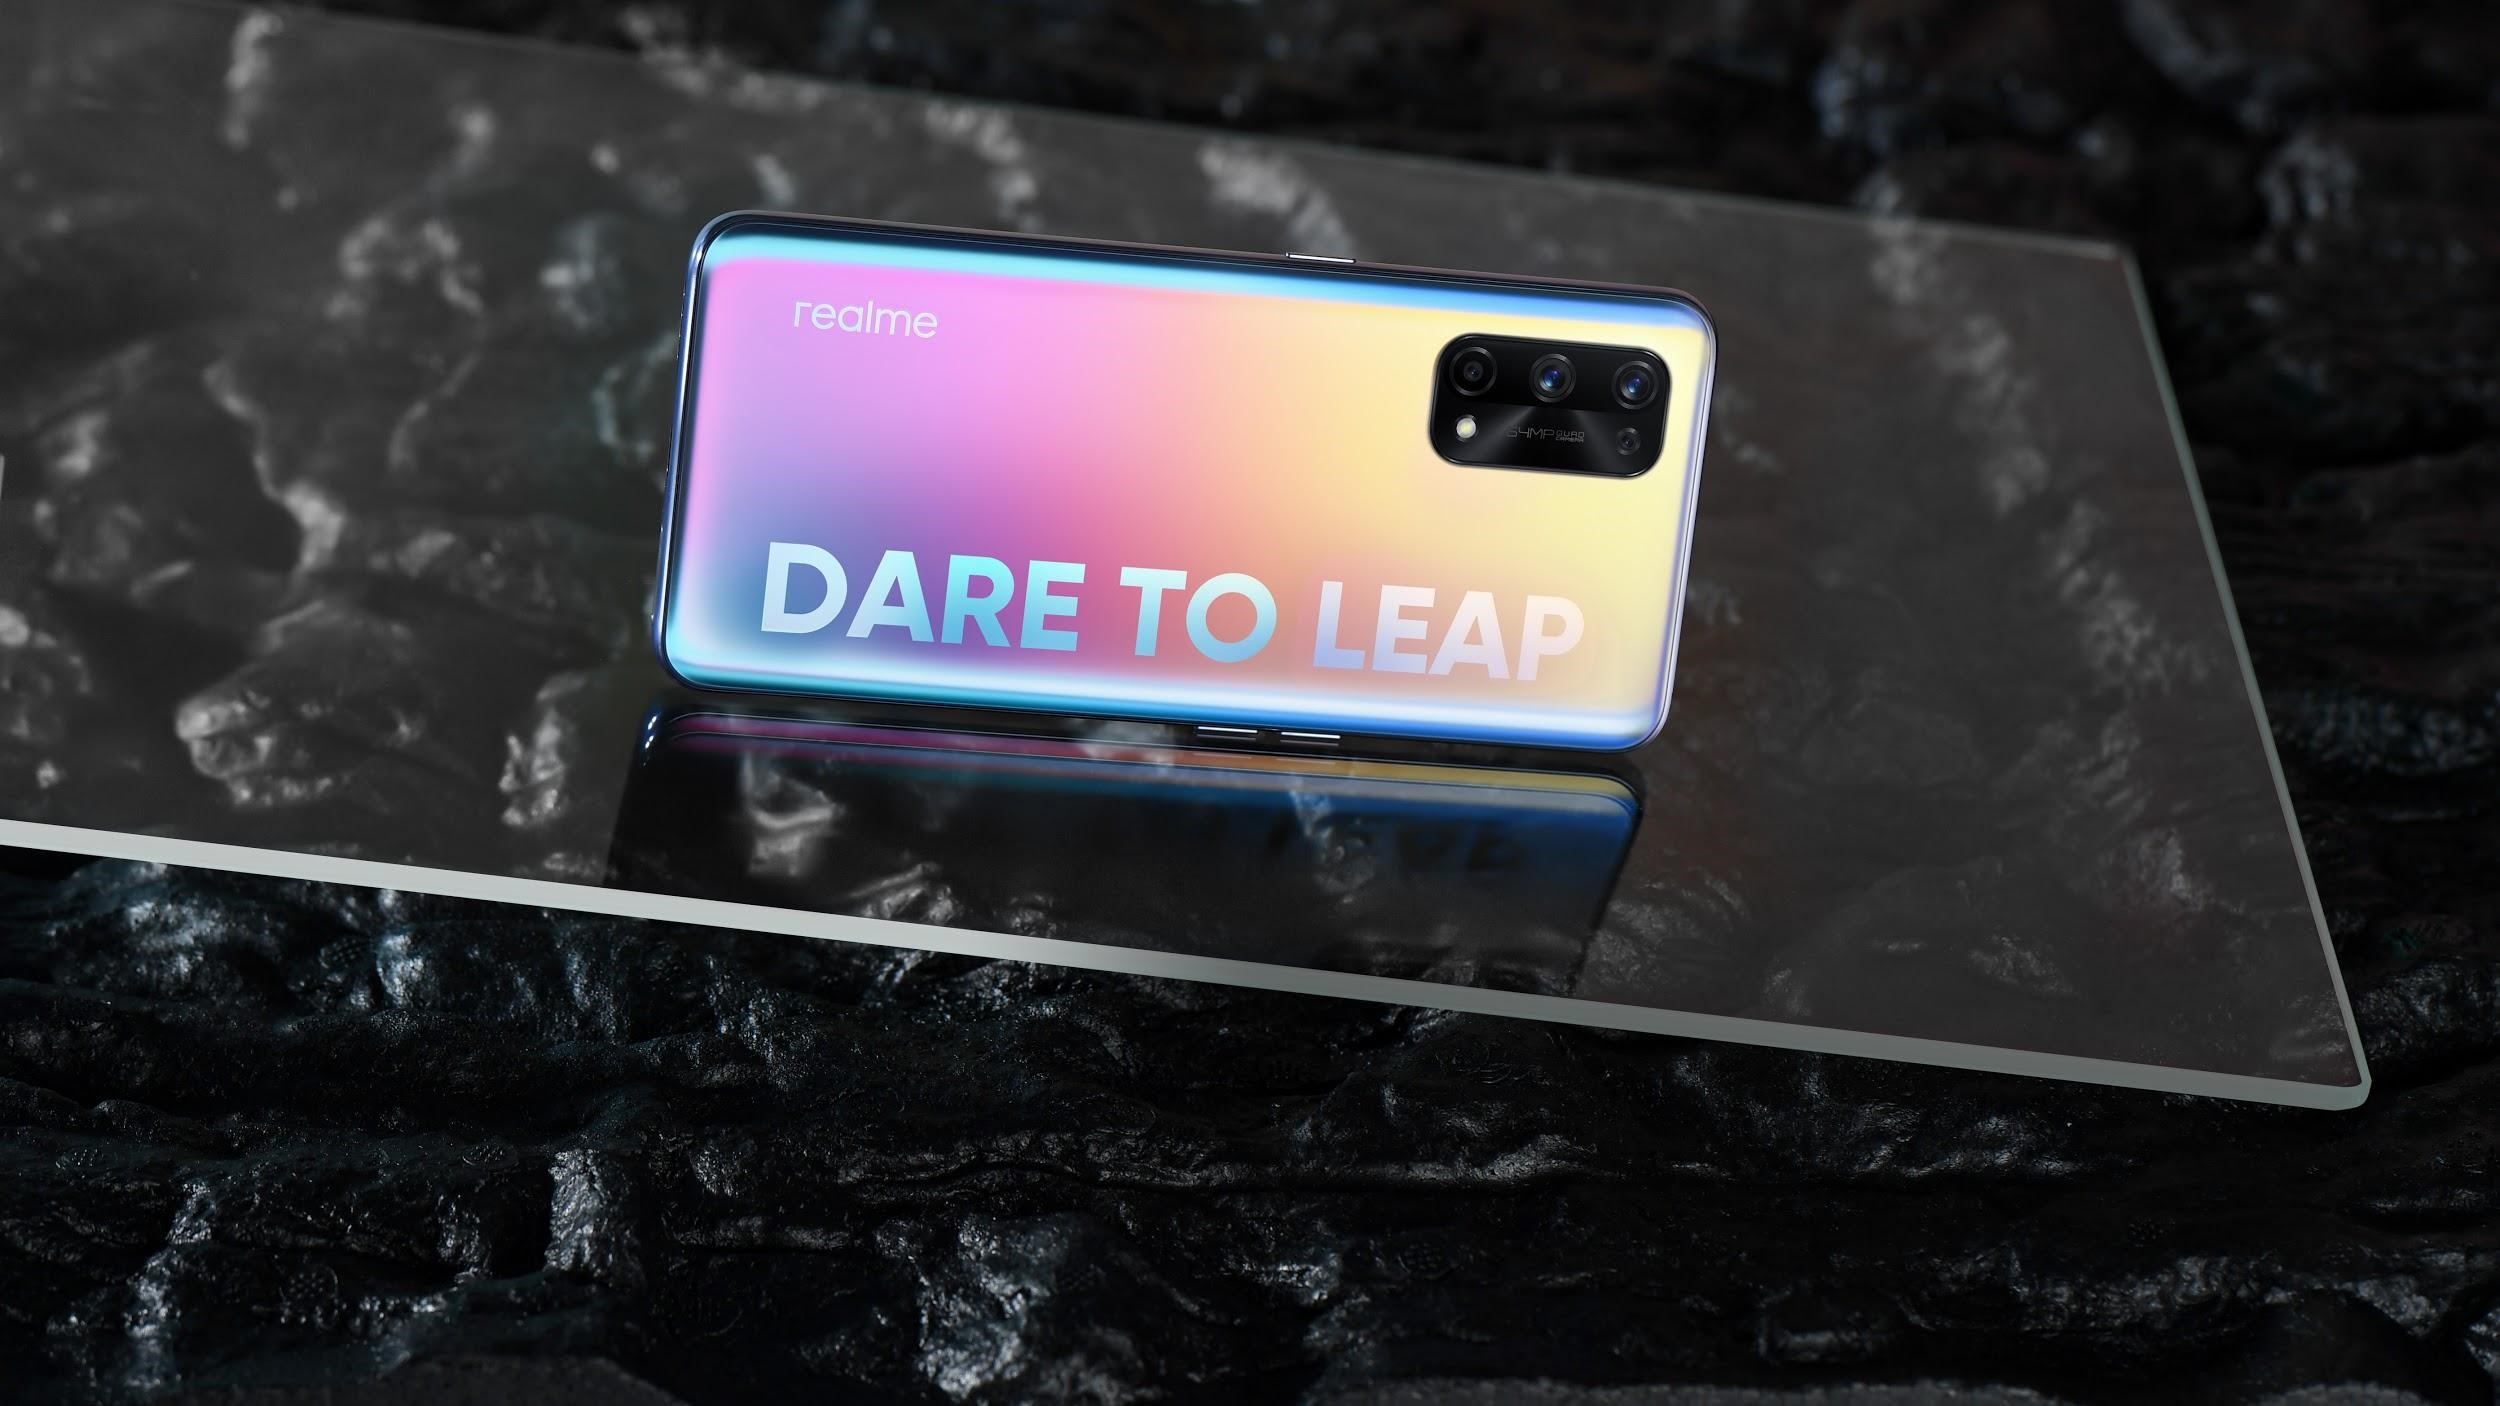 realme will be one of the first smartphone brands to release a flagship equipped with MediaTek's Dimensity 1200, bringing a leap-forward 5G experience